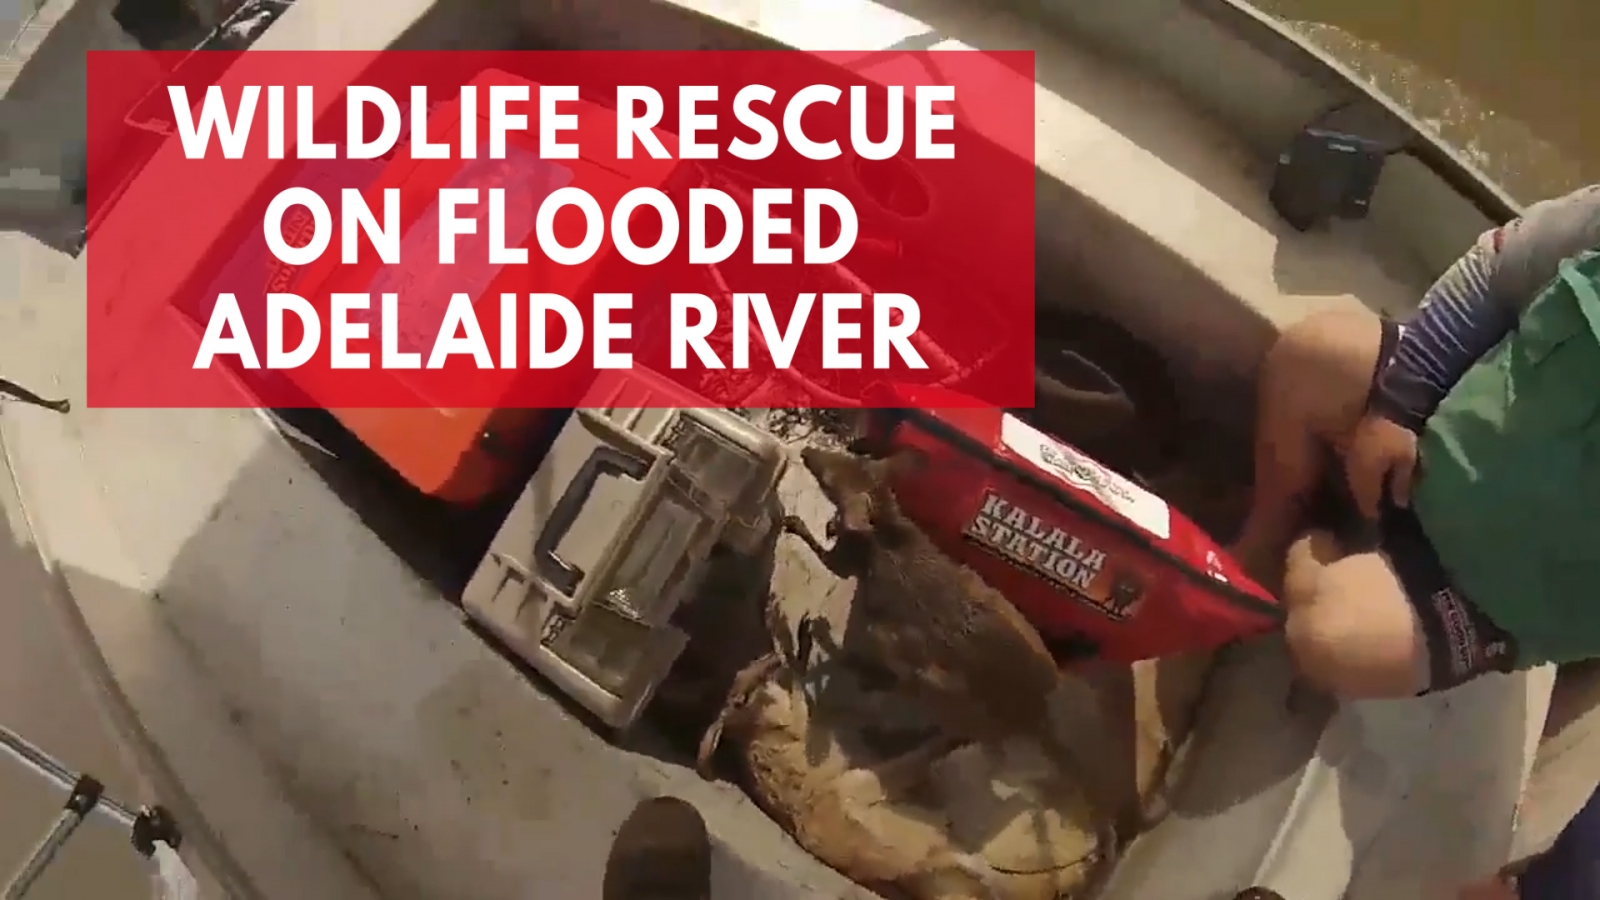 men-rescue-wallabies-and-pig-during-fishing-trip-on-flooded-adelaide-river